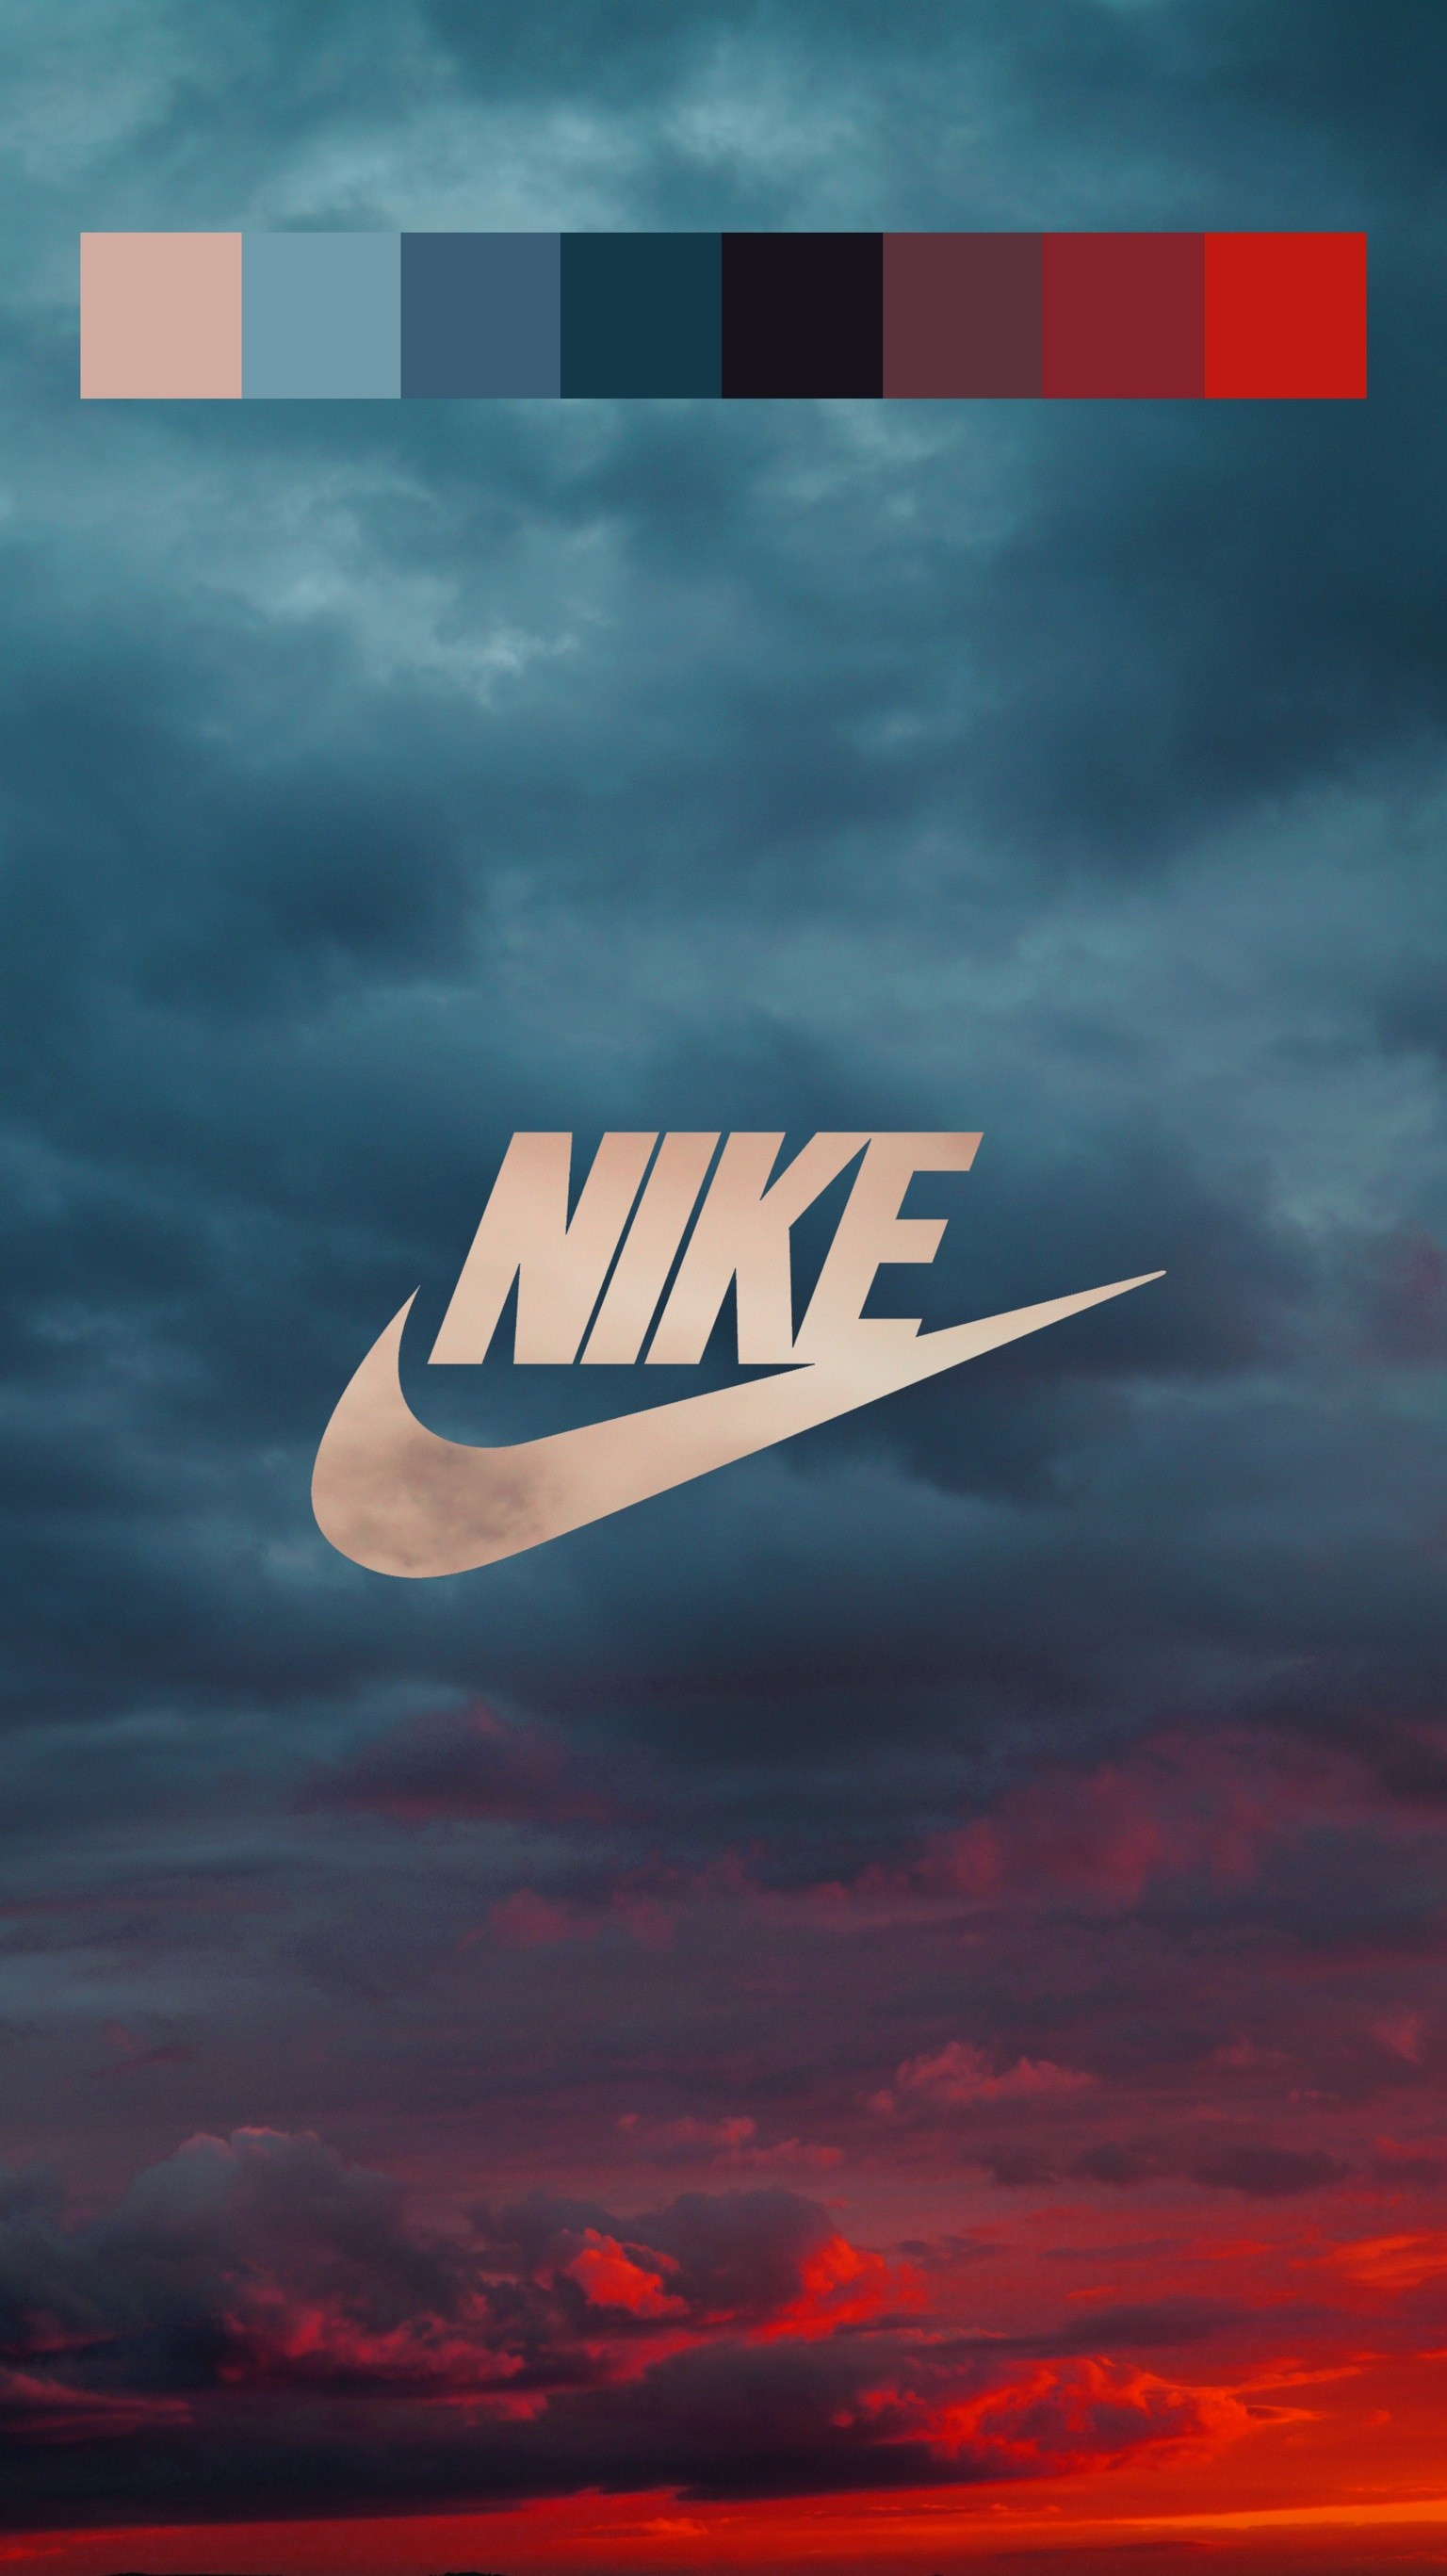 1536x2734 Iphone Wallpapers, Adidas, Iphone Backgrounds. more Nike